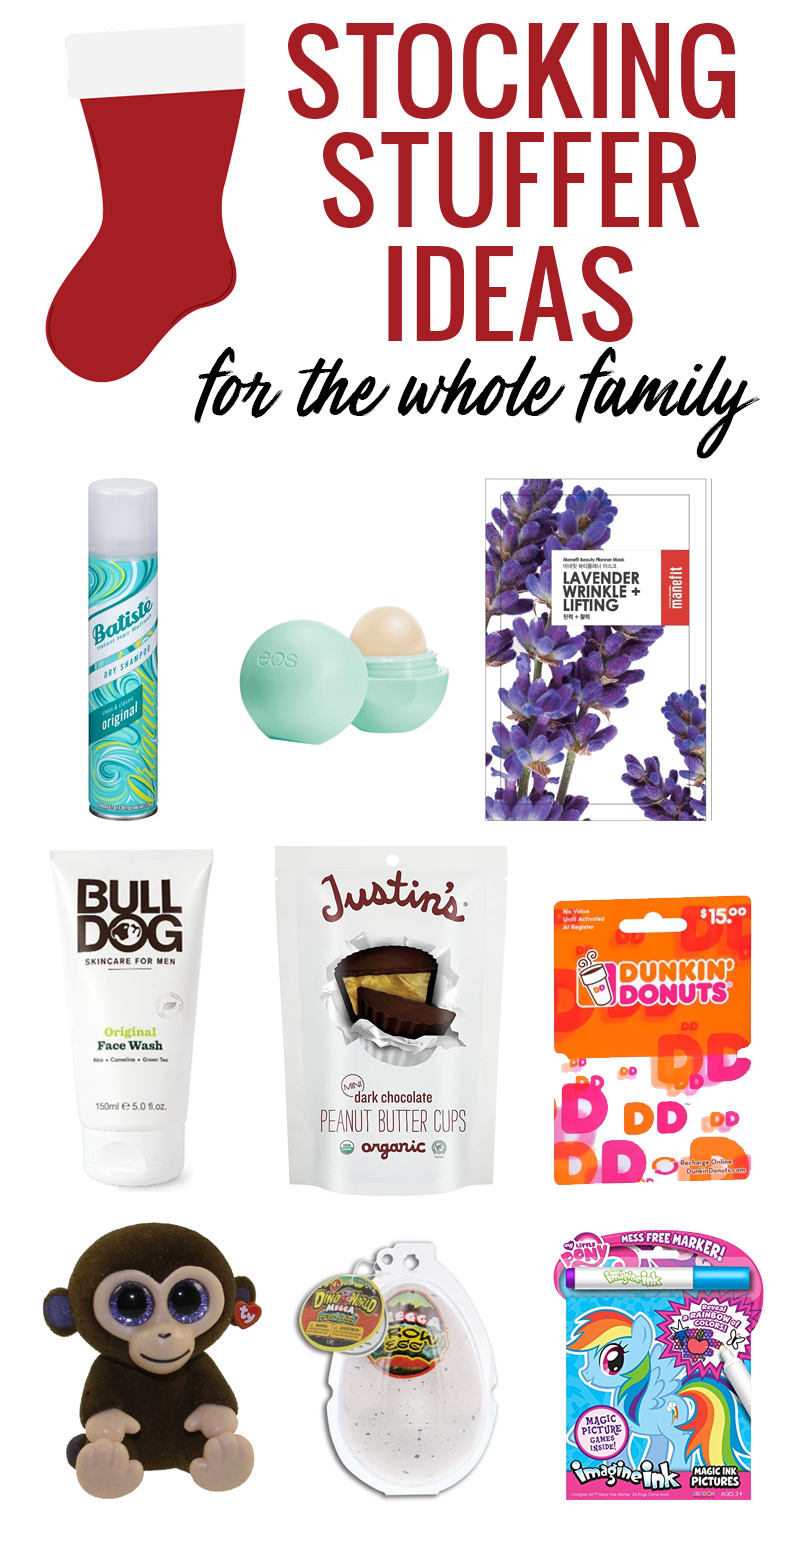 Stocking Stuffer Ideas for the Whole Family | Gifts For Everyone on ...